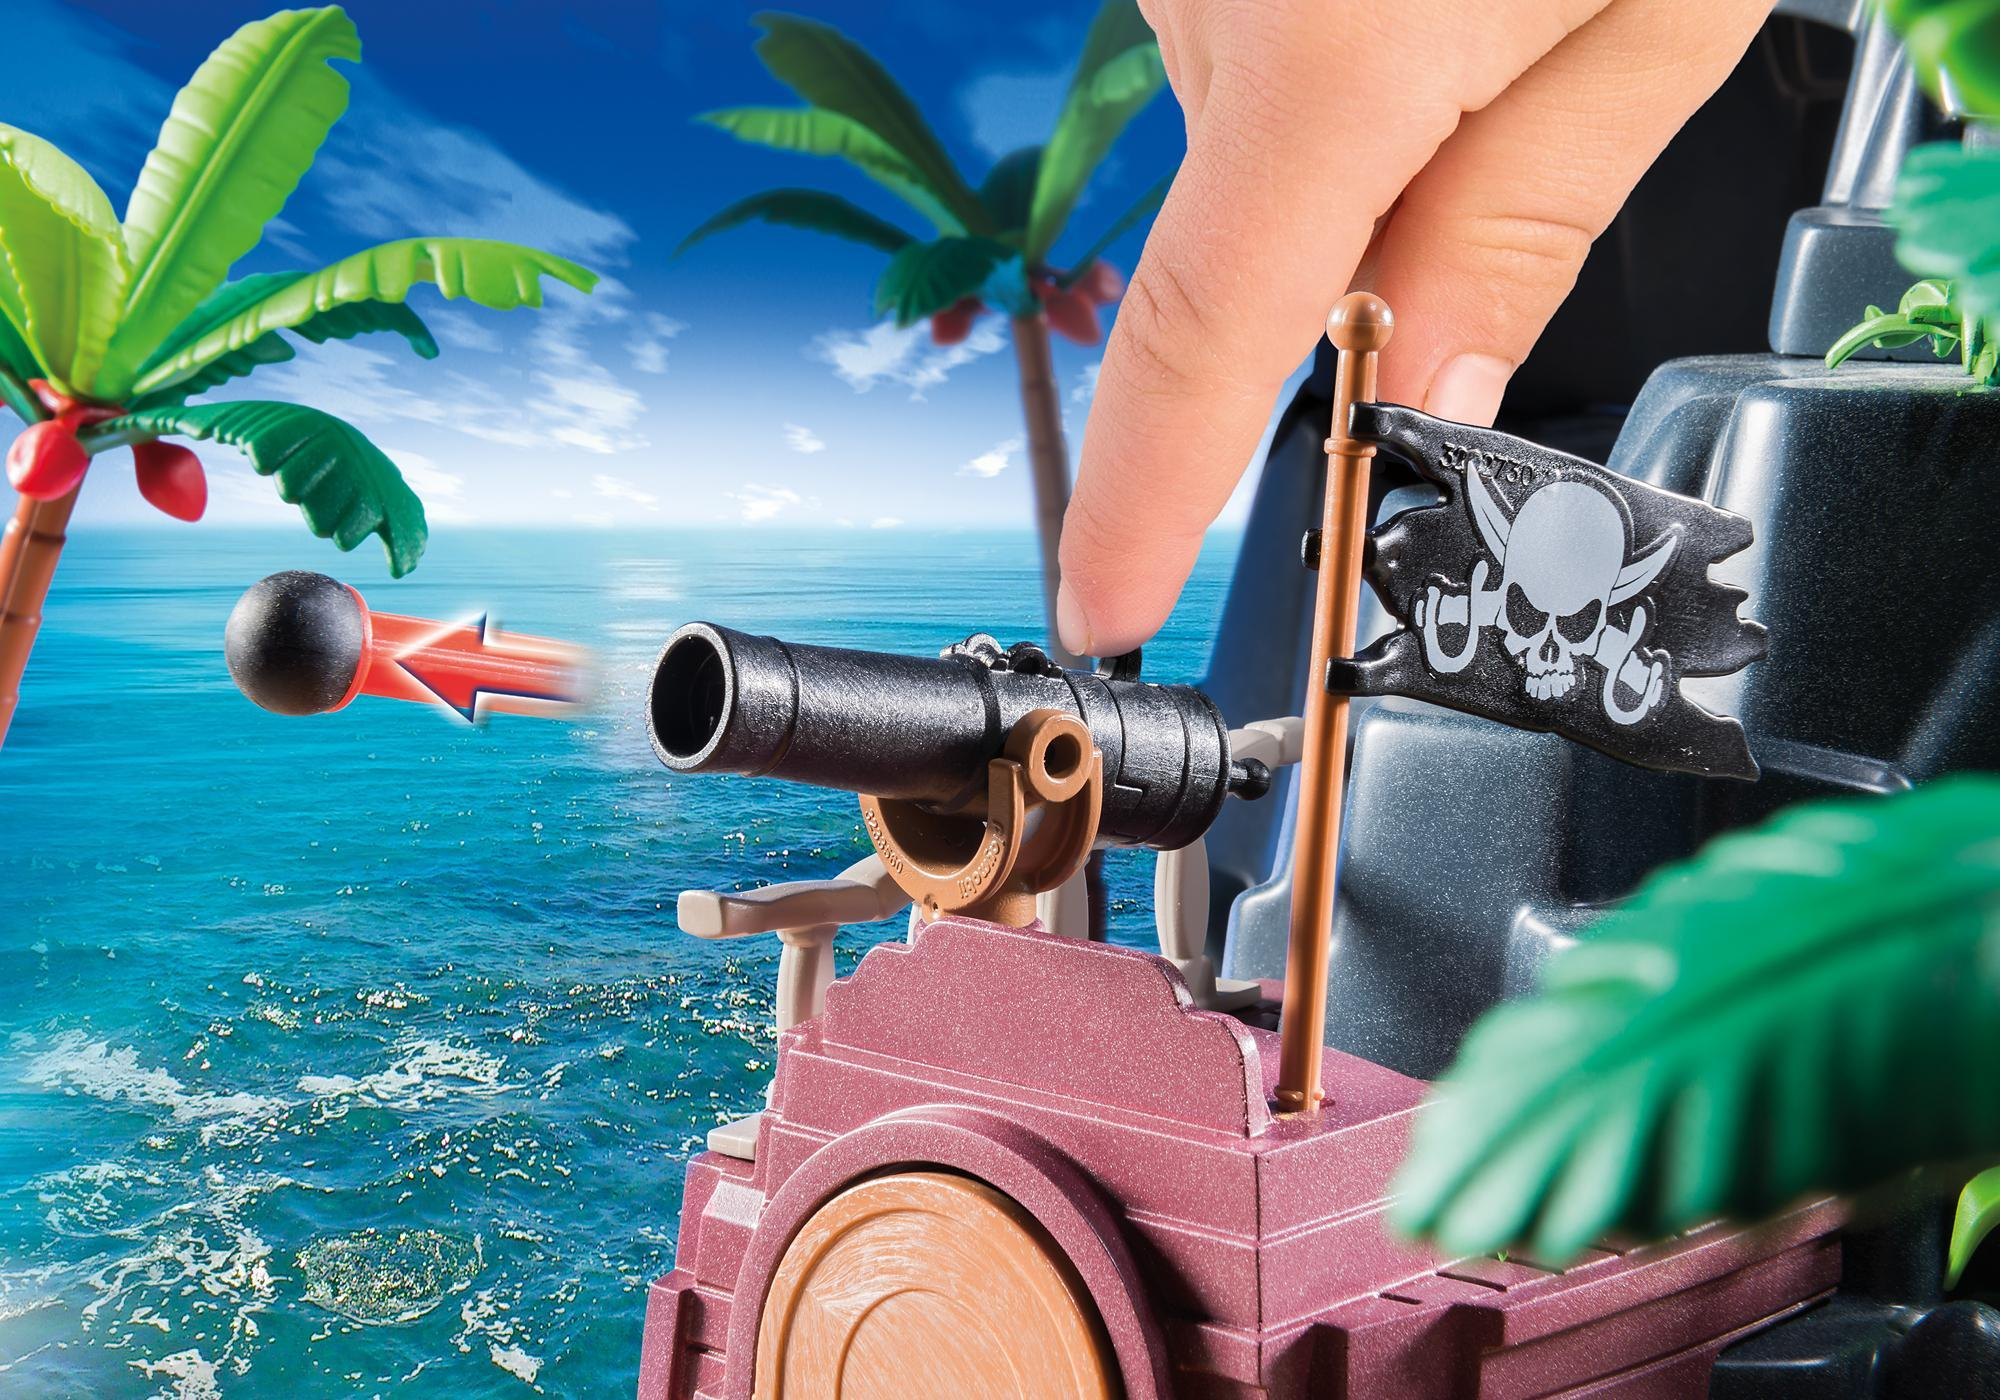 http://media.playmobil.com/i/playmobil/6679_product_extra4/Πειρατικό νησί θησαυρού